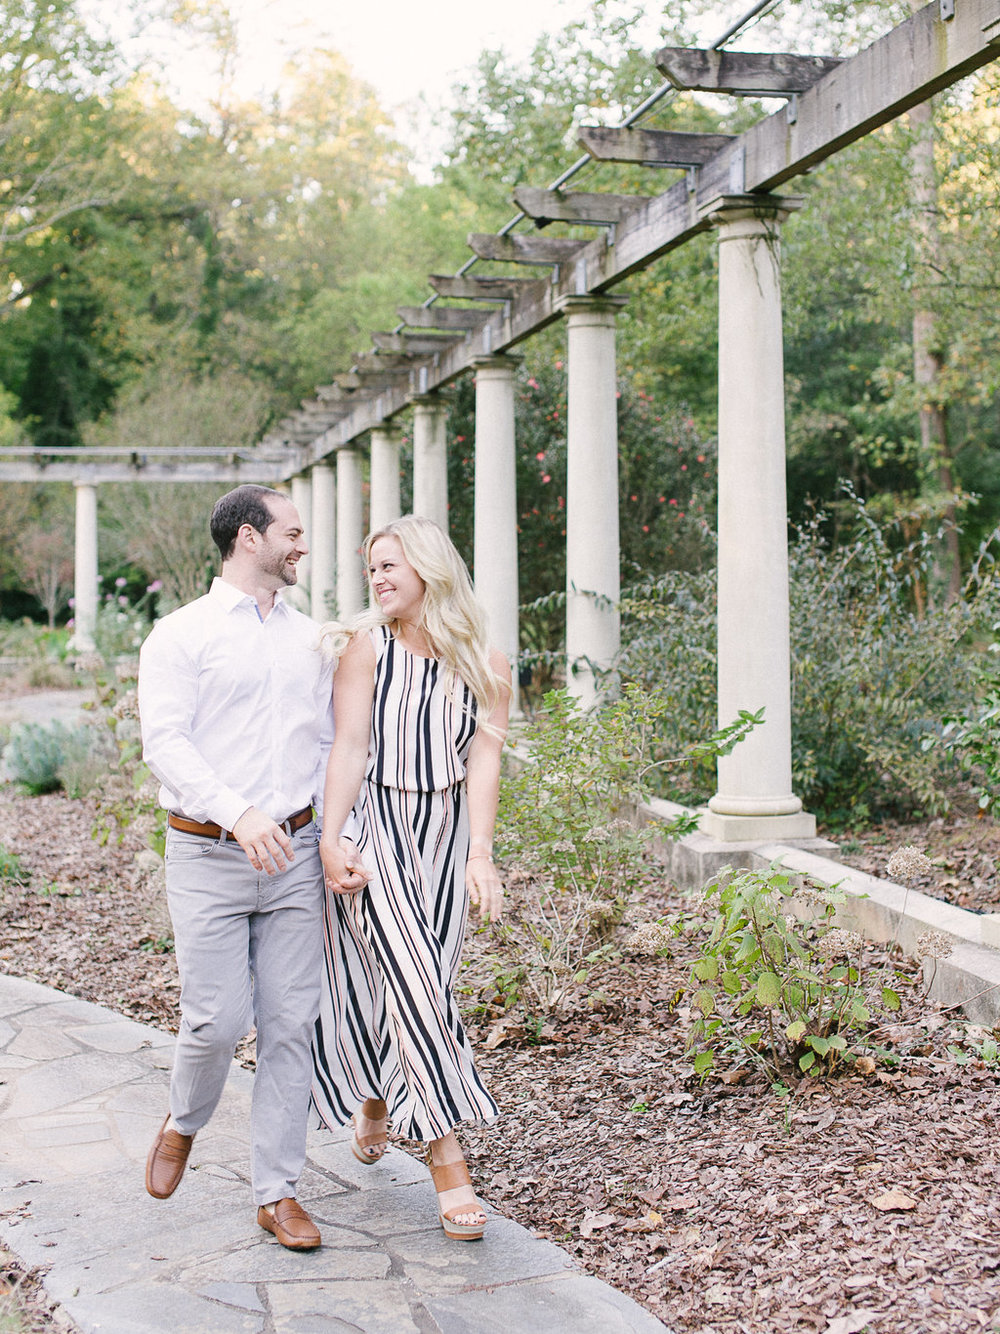 Cator-Woolford-Gardens-Engagement-atlanta-wedding-photographer-hannah-forsberg-10.jpg